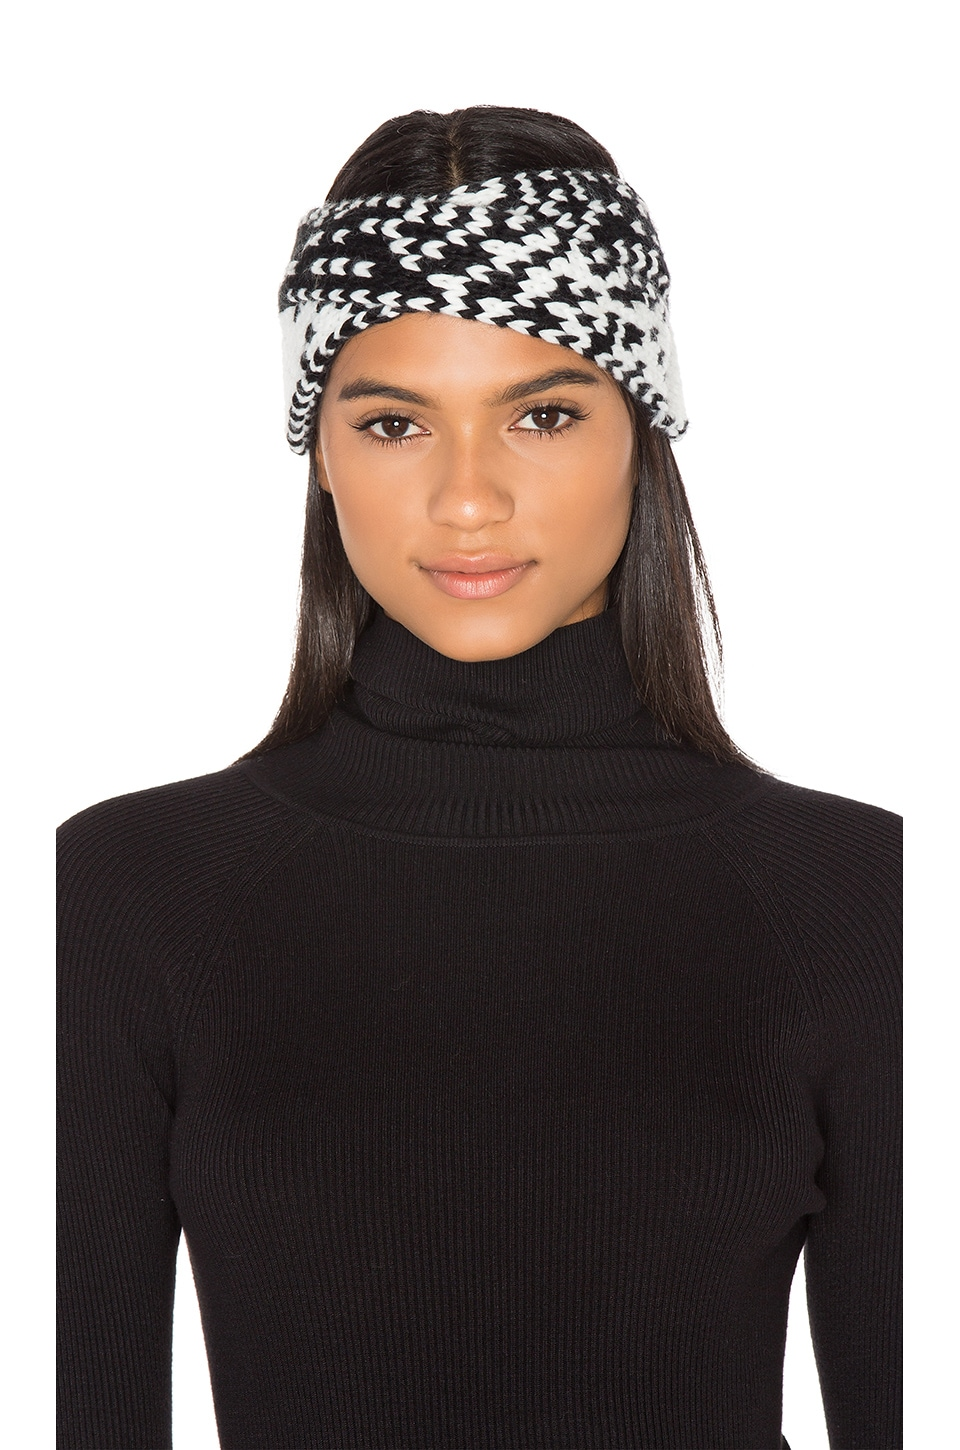 Avery Headband at REVOLVE